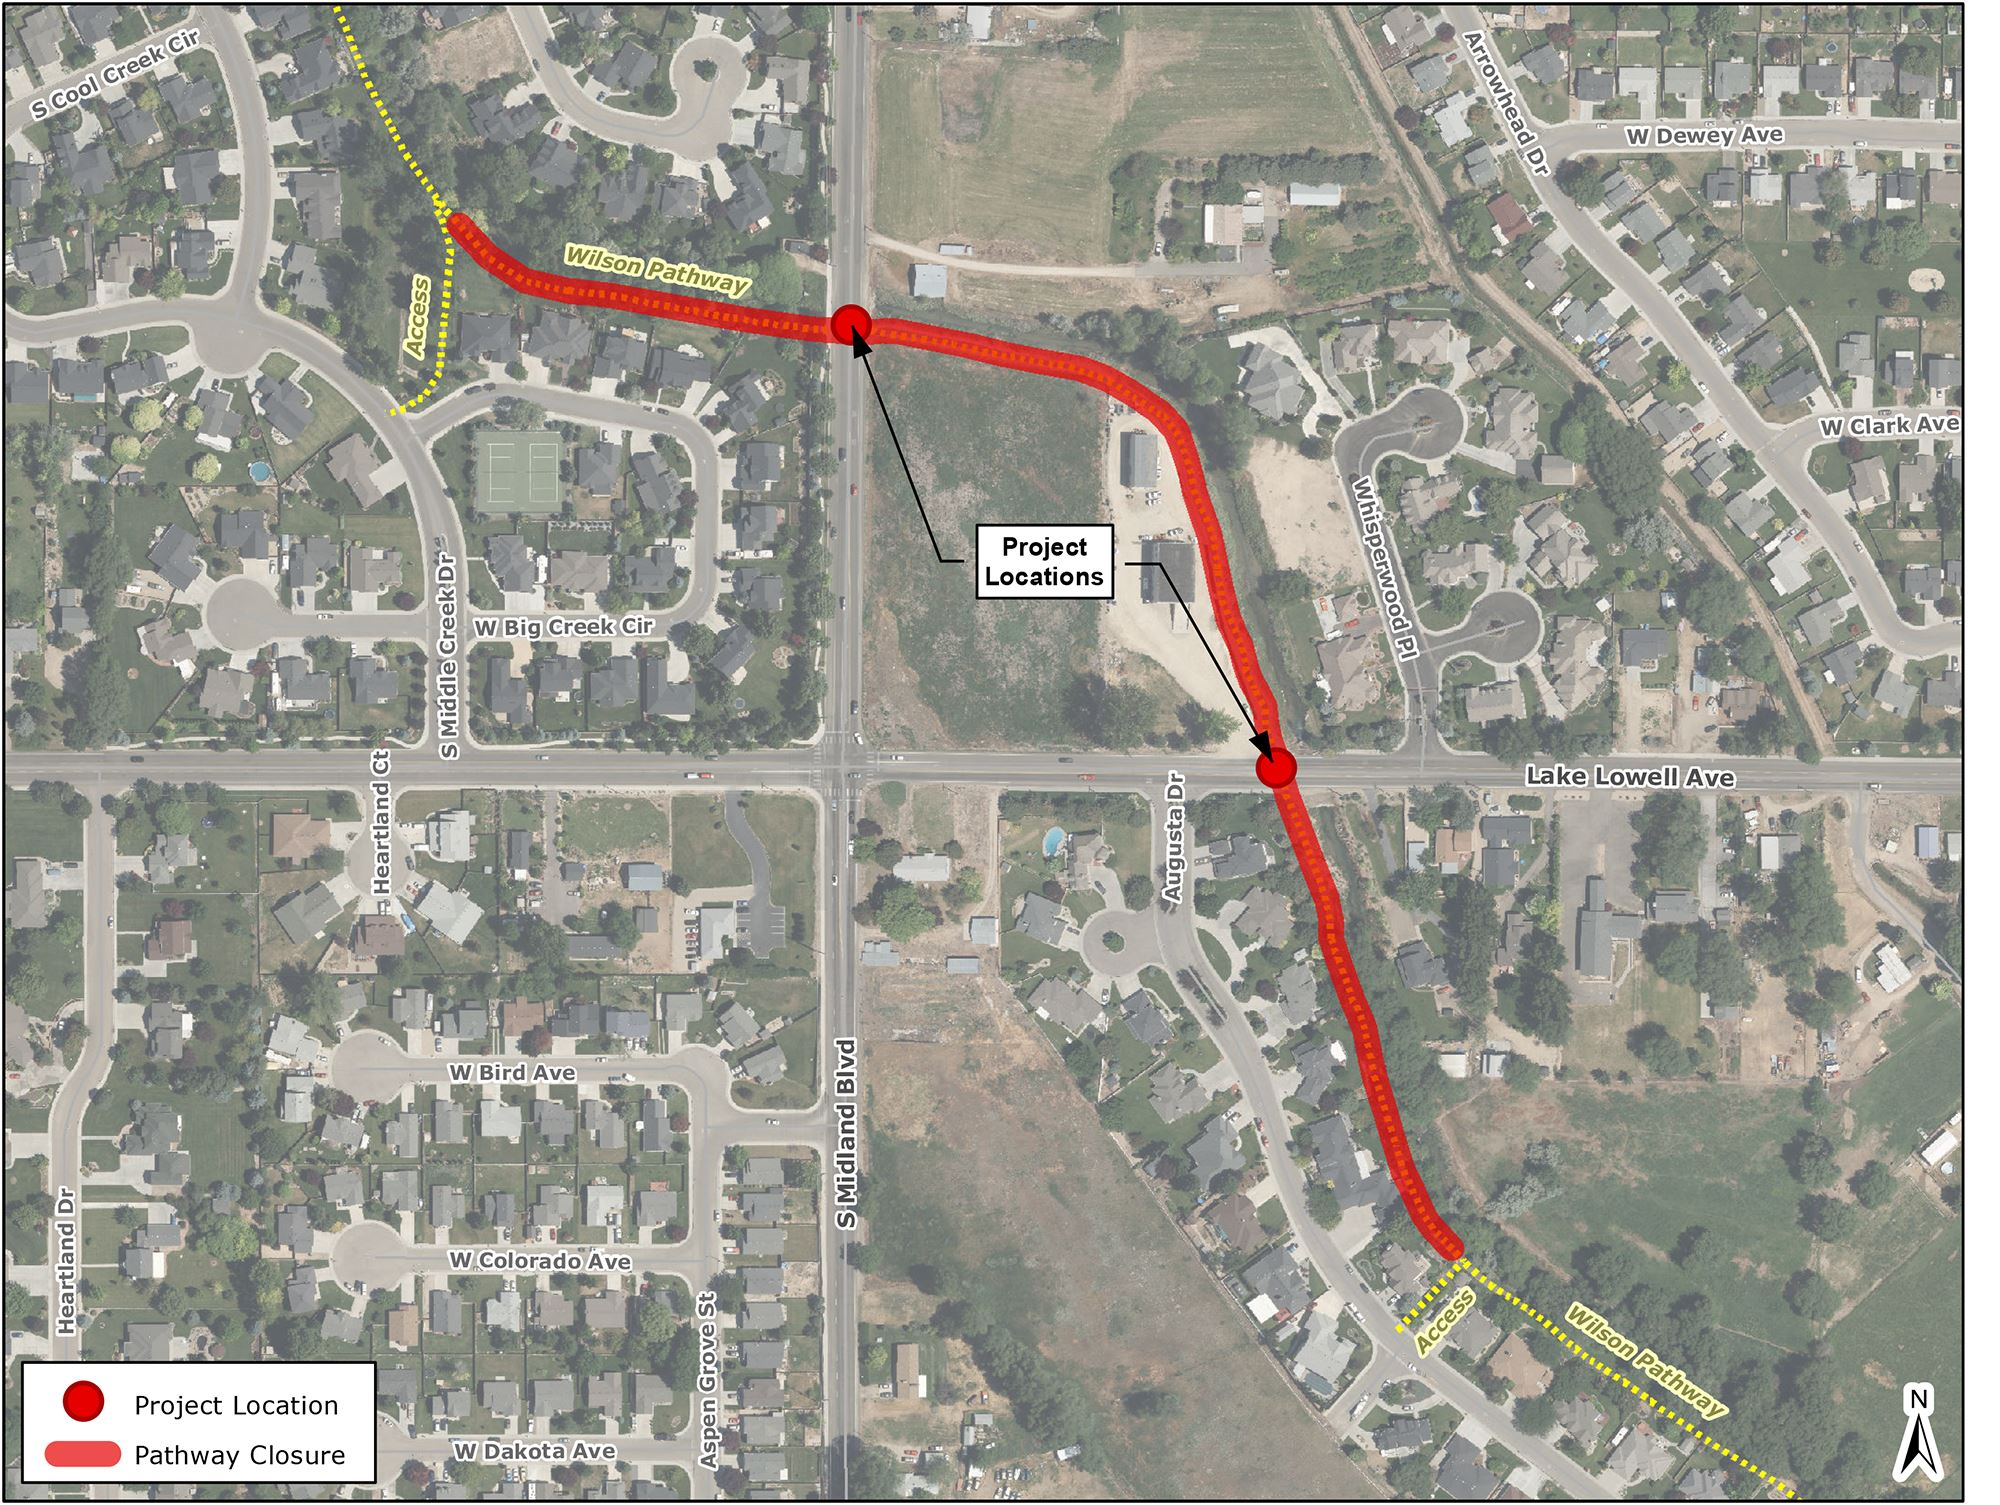 WilsonvPathvHAWKS -  Pathway Closure map